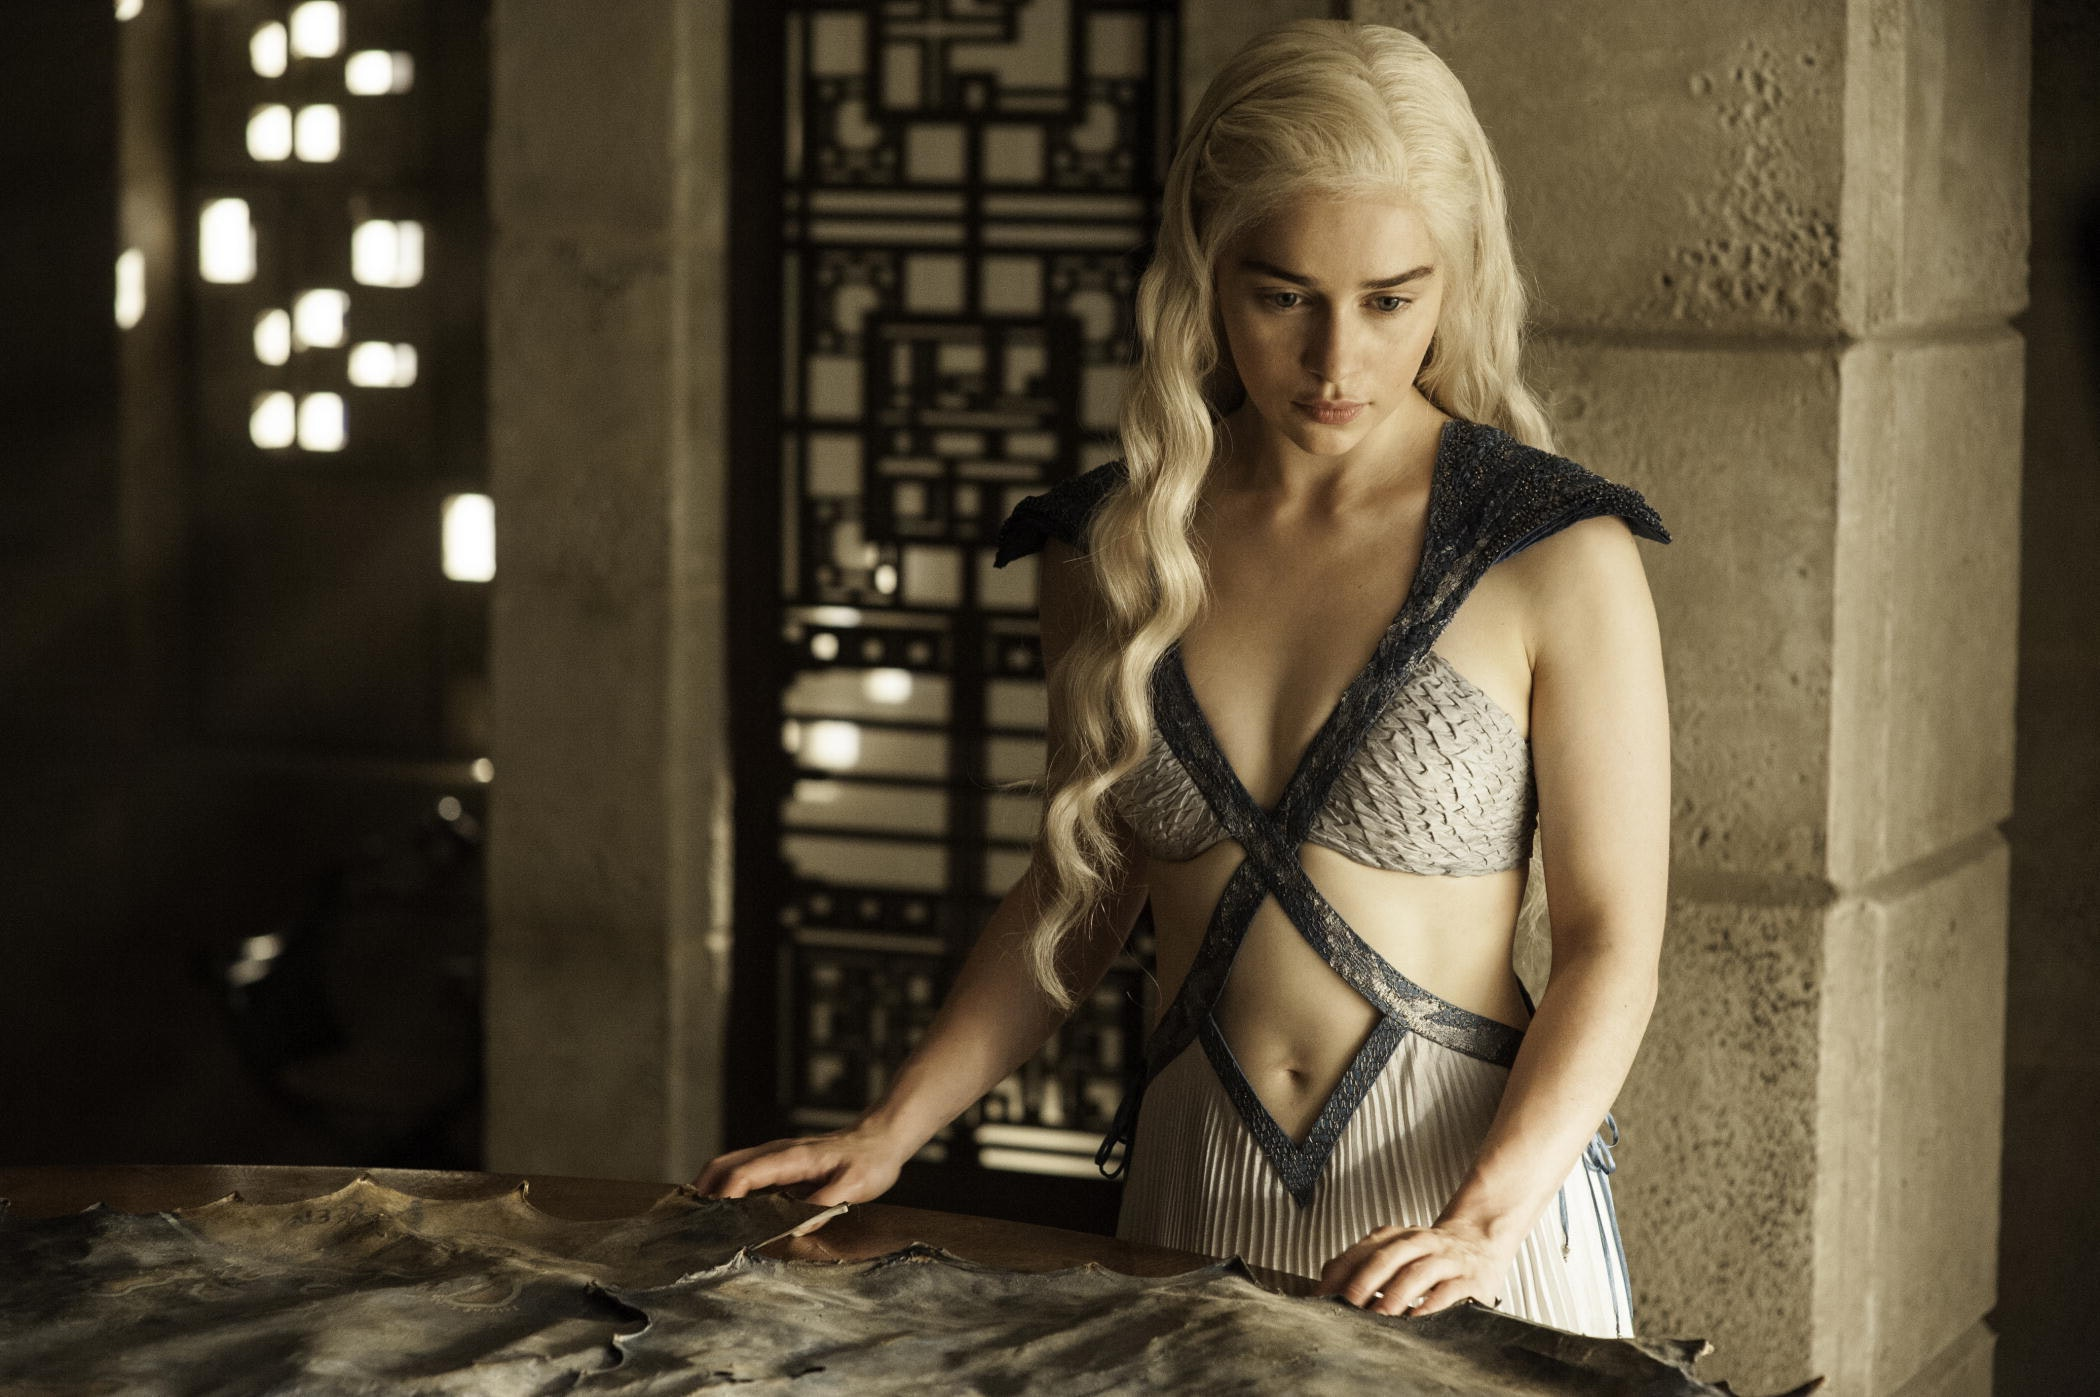 Extremely Hot Game of Thrones' Star Emilia Clarke Says She Never' Gets HitOn